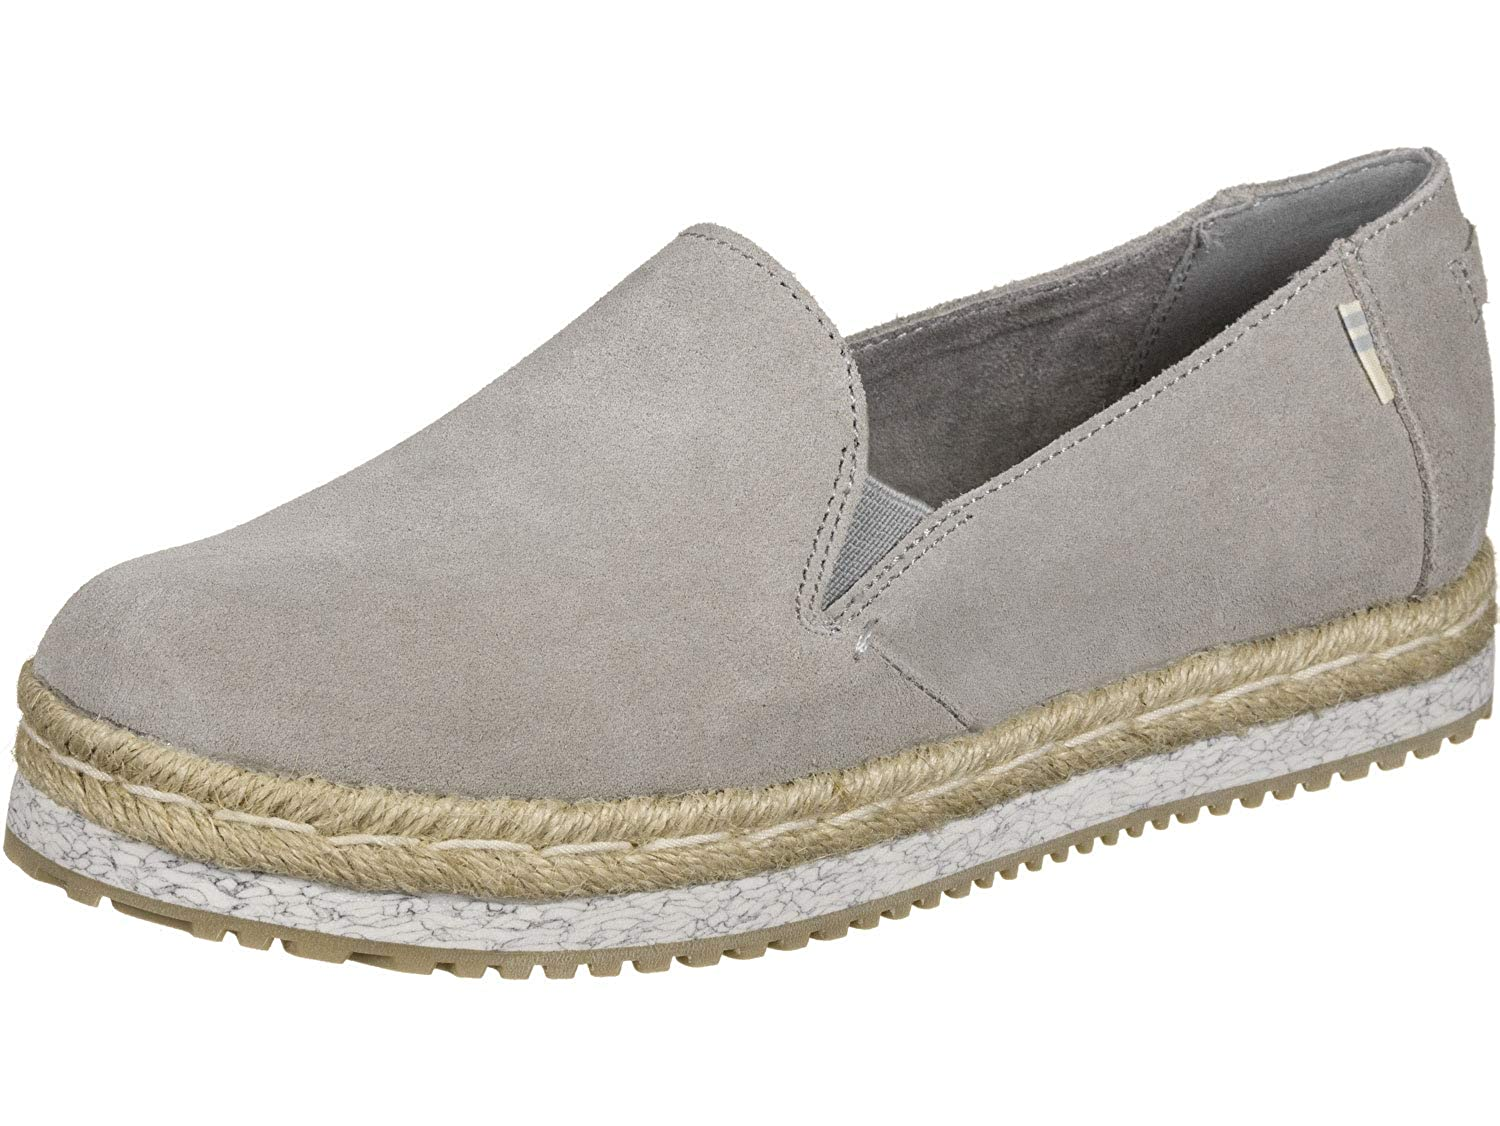 Drizzle Grey Suede at Amazon.in